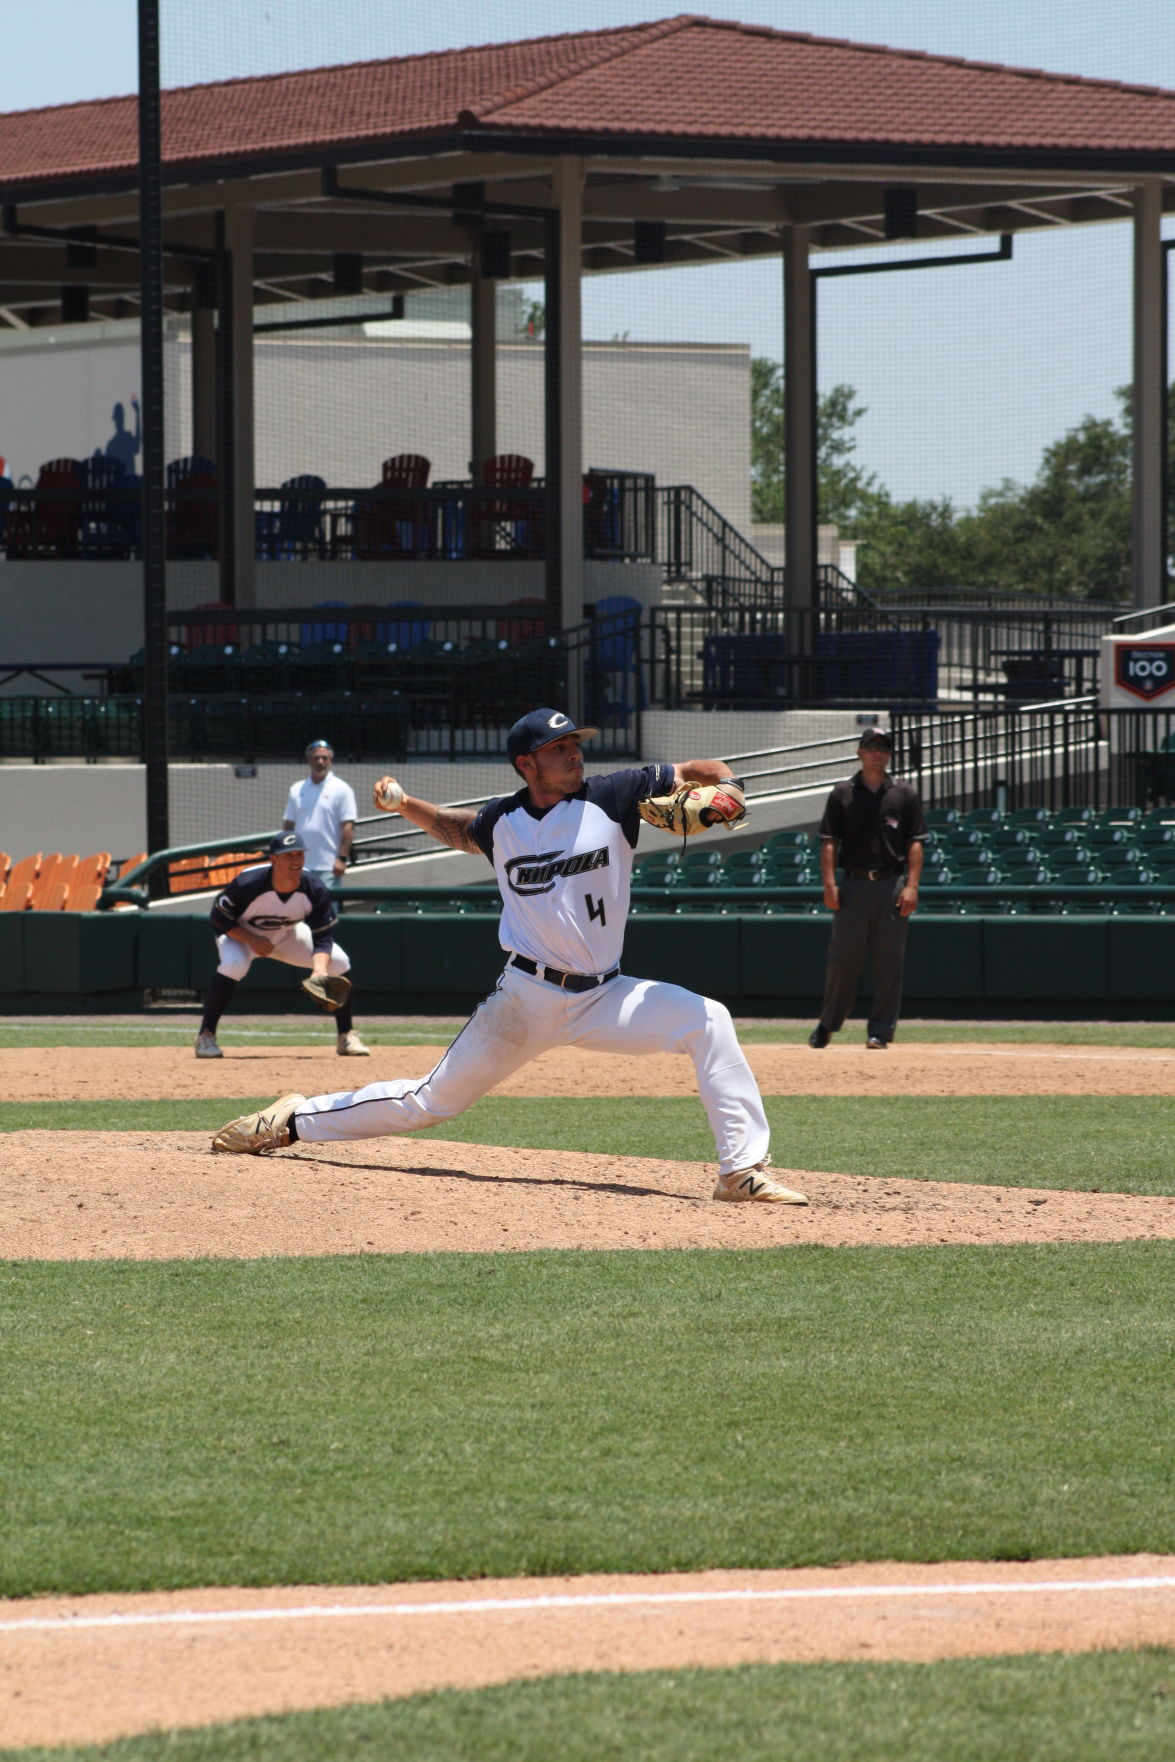 harding wins national crown reds call his name in draft from